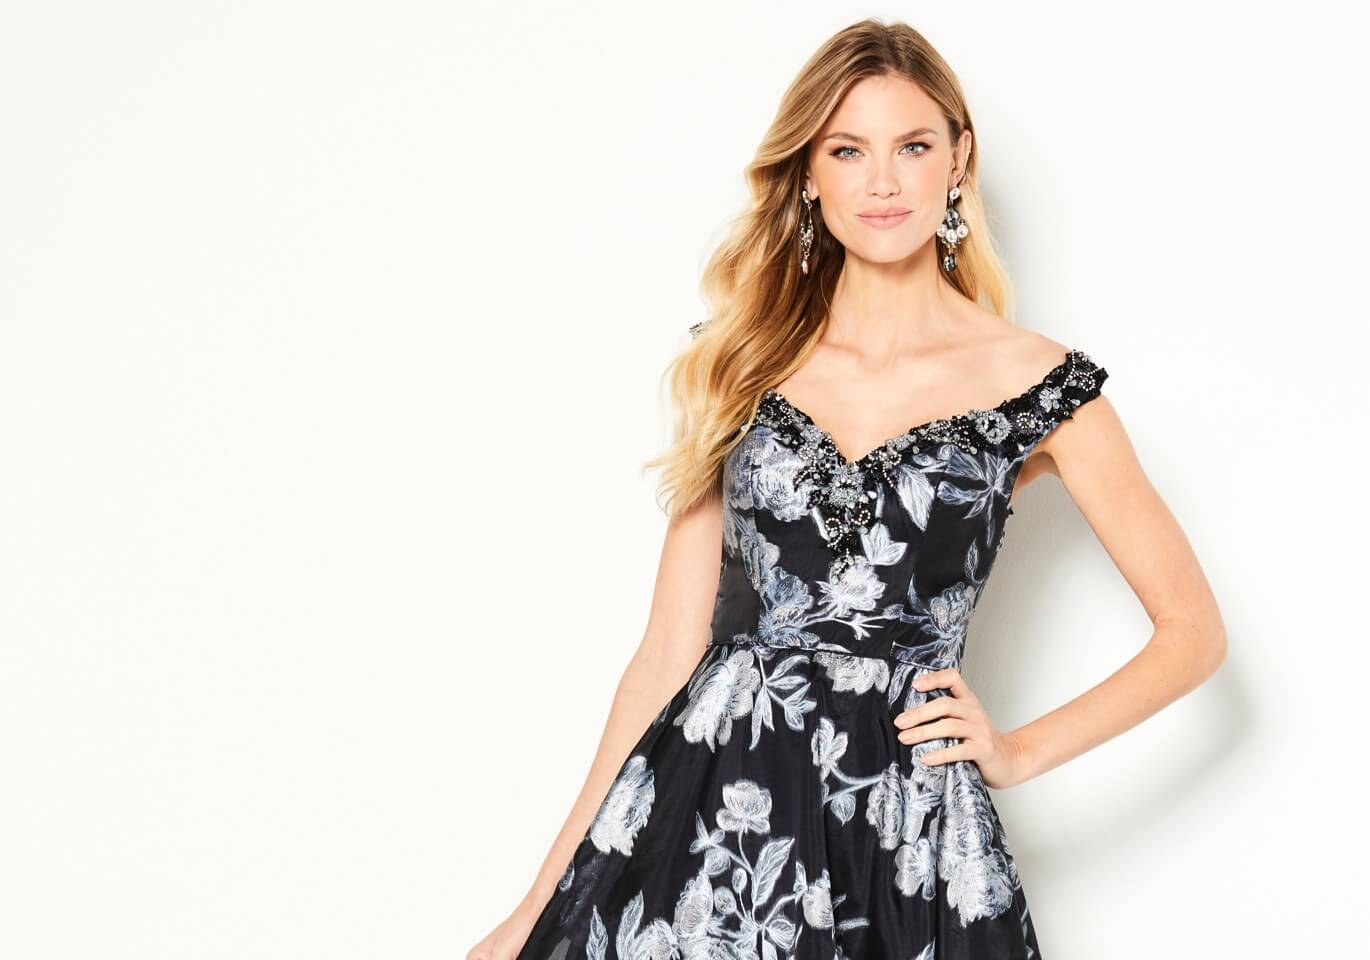 Model wearing a black floral dress